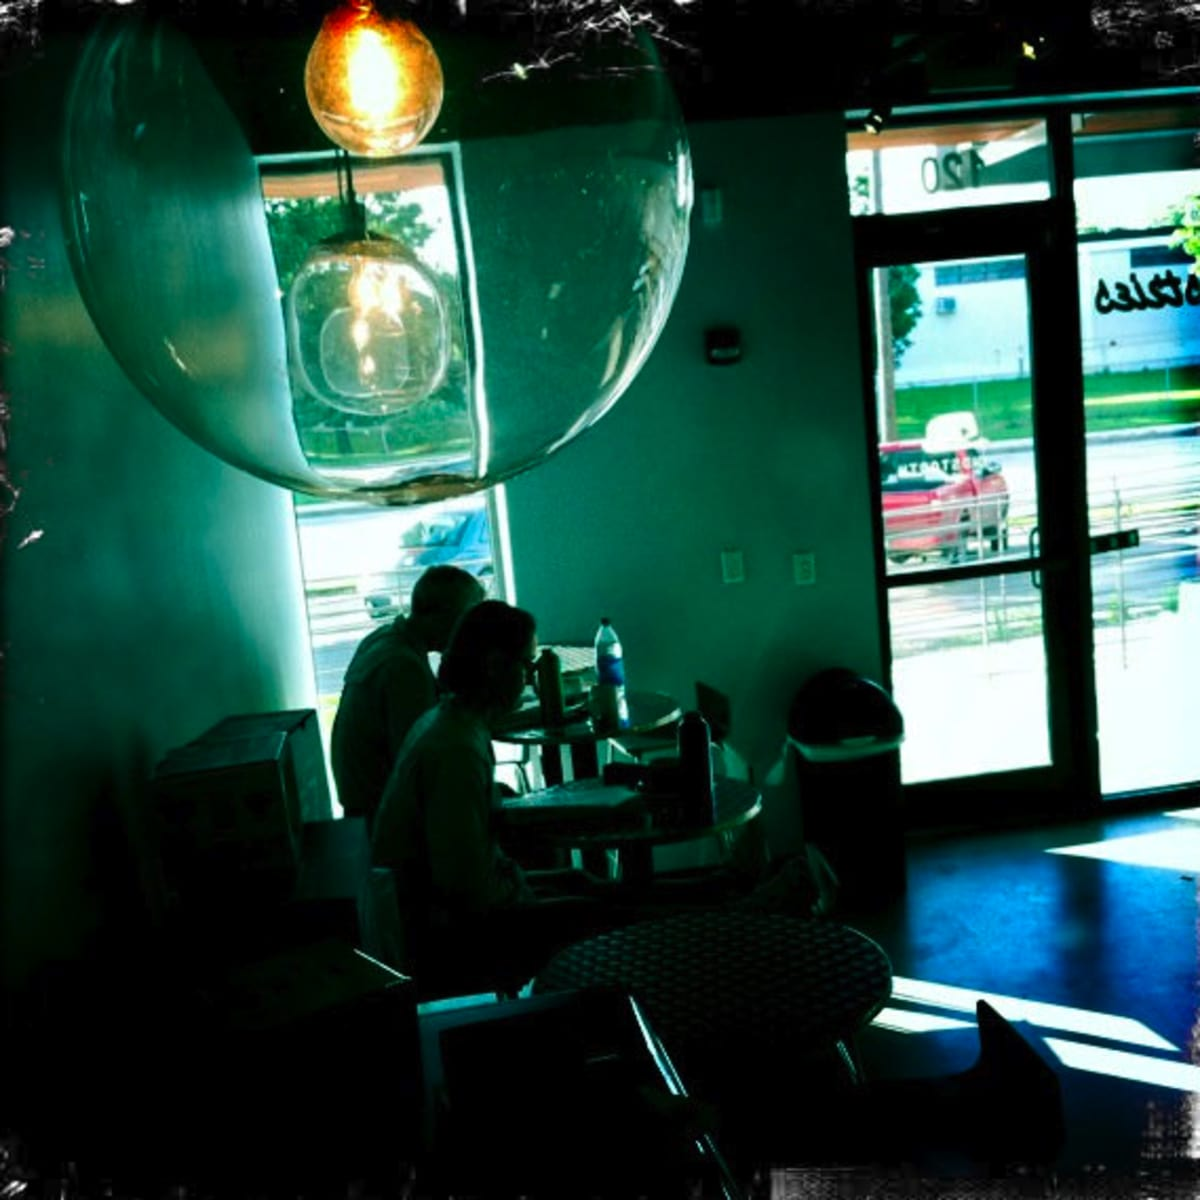 Austin_photo: places_drinks_houndstooth_interior